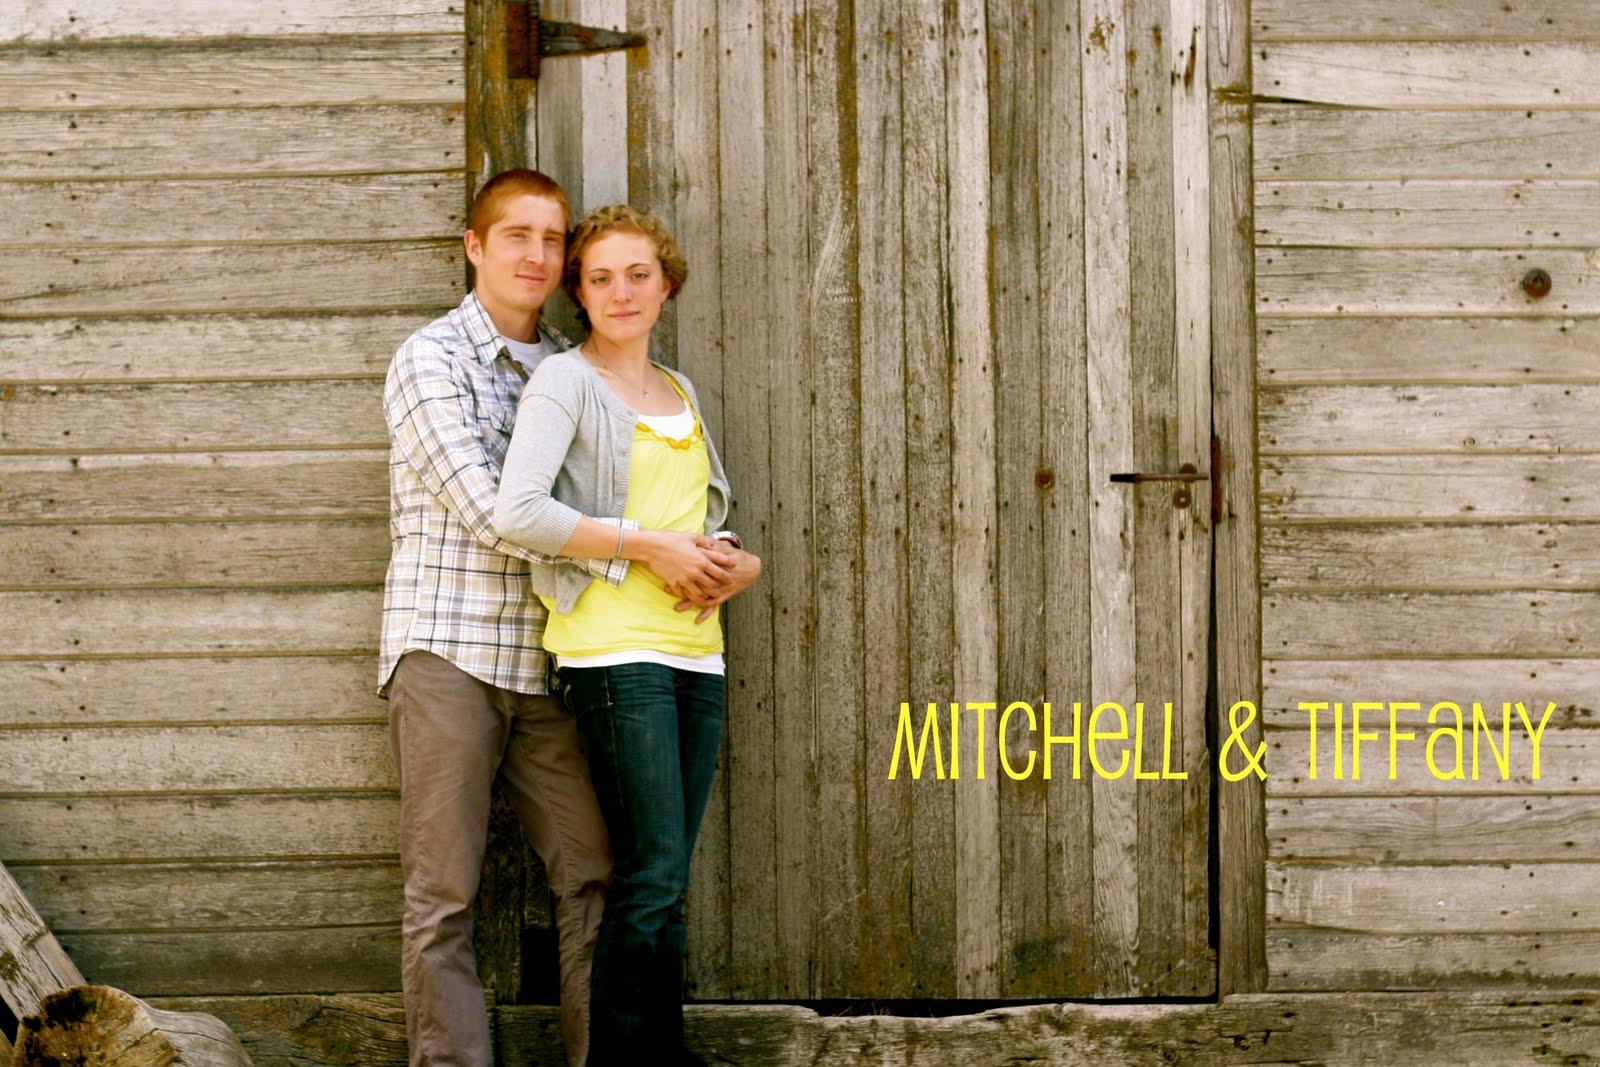 Mitchell and Tiffany Elias